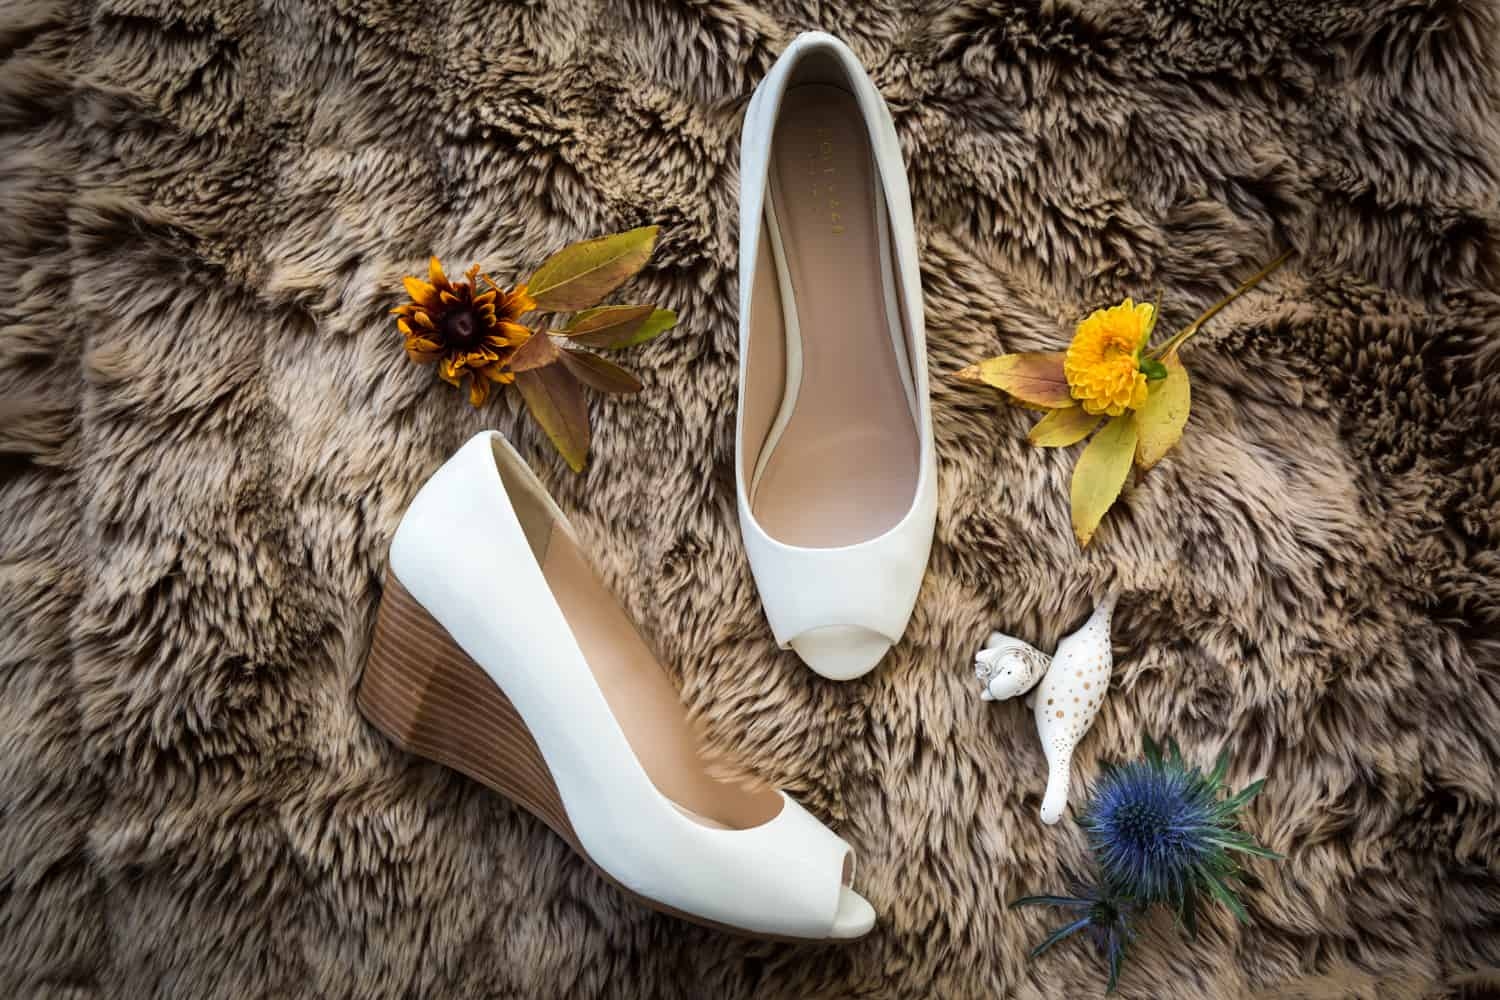 Bride's white wedge heels flowers and jewelry on furry rug